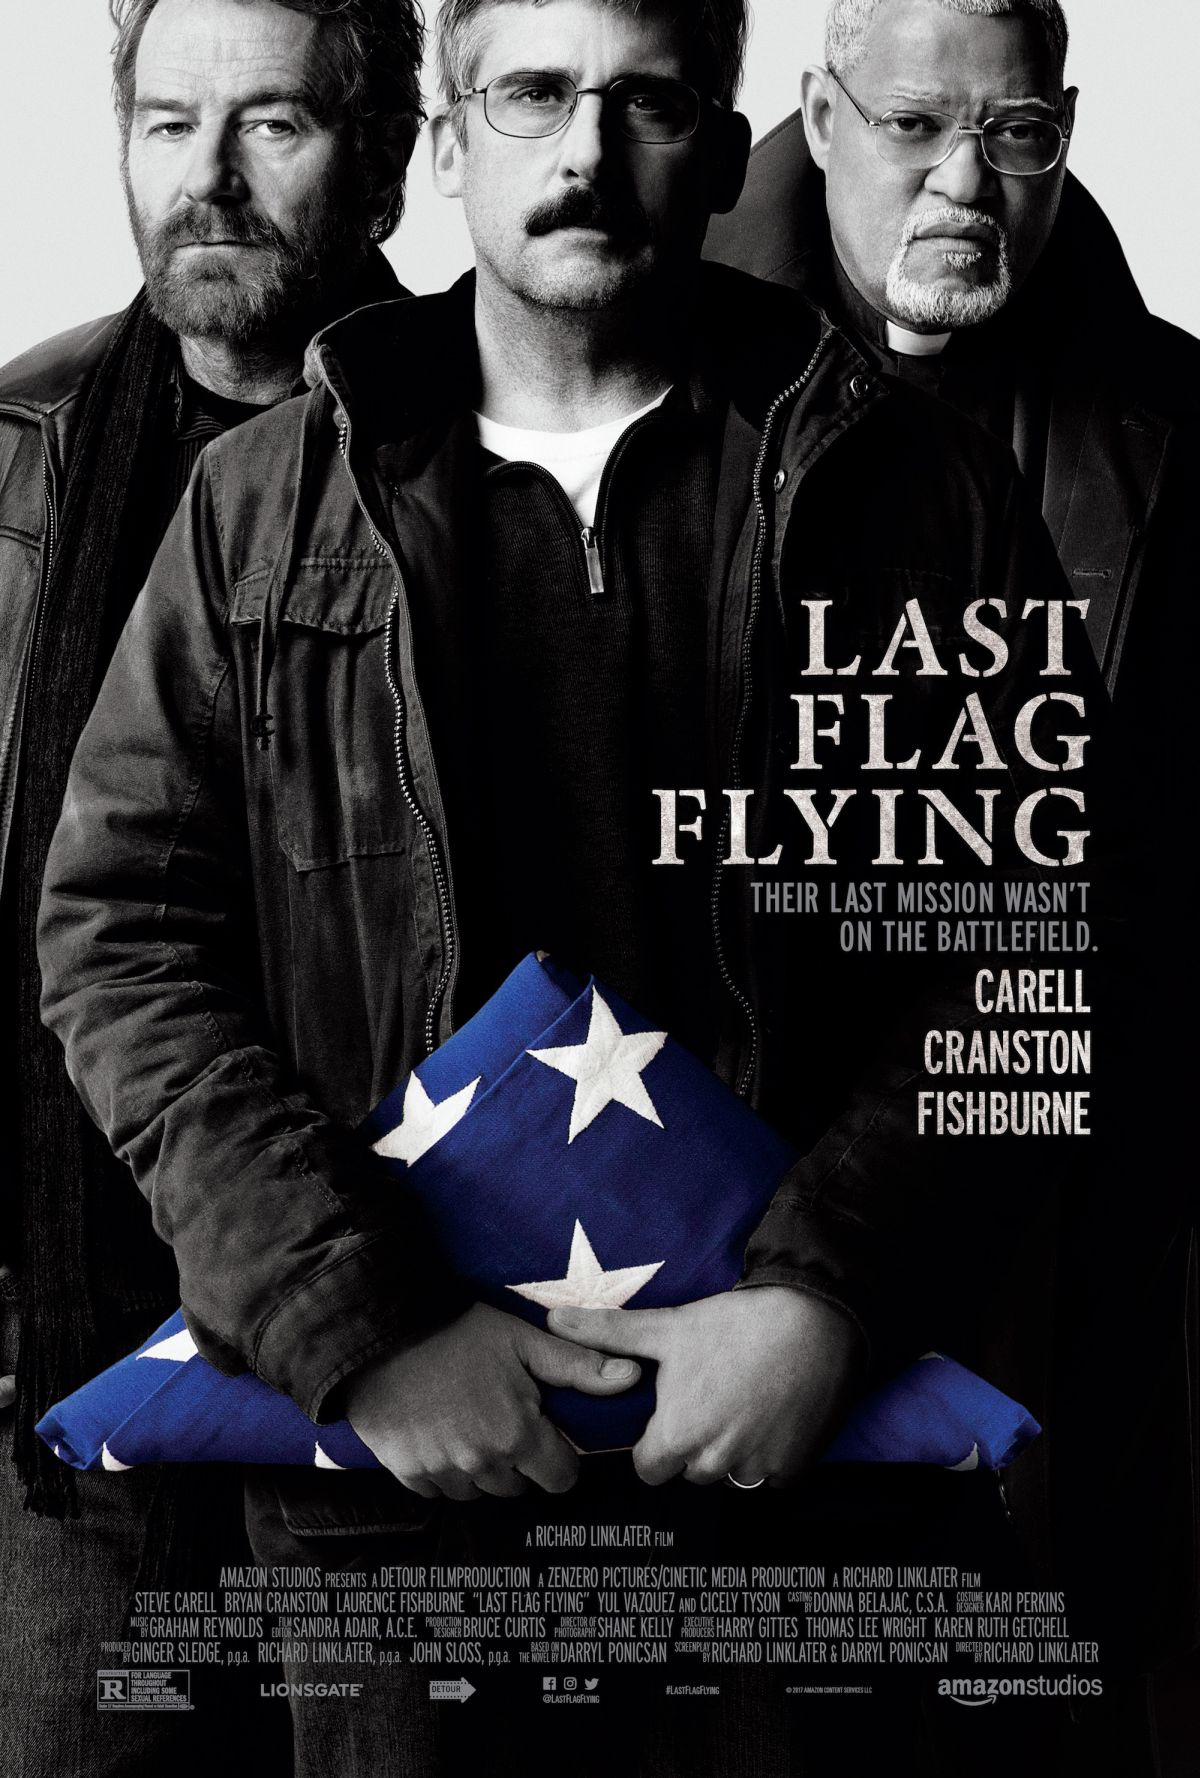 last-flag-flying-steve-carell-bryan-cranston-et-lawrence-fishburn-en-affiche